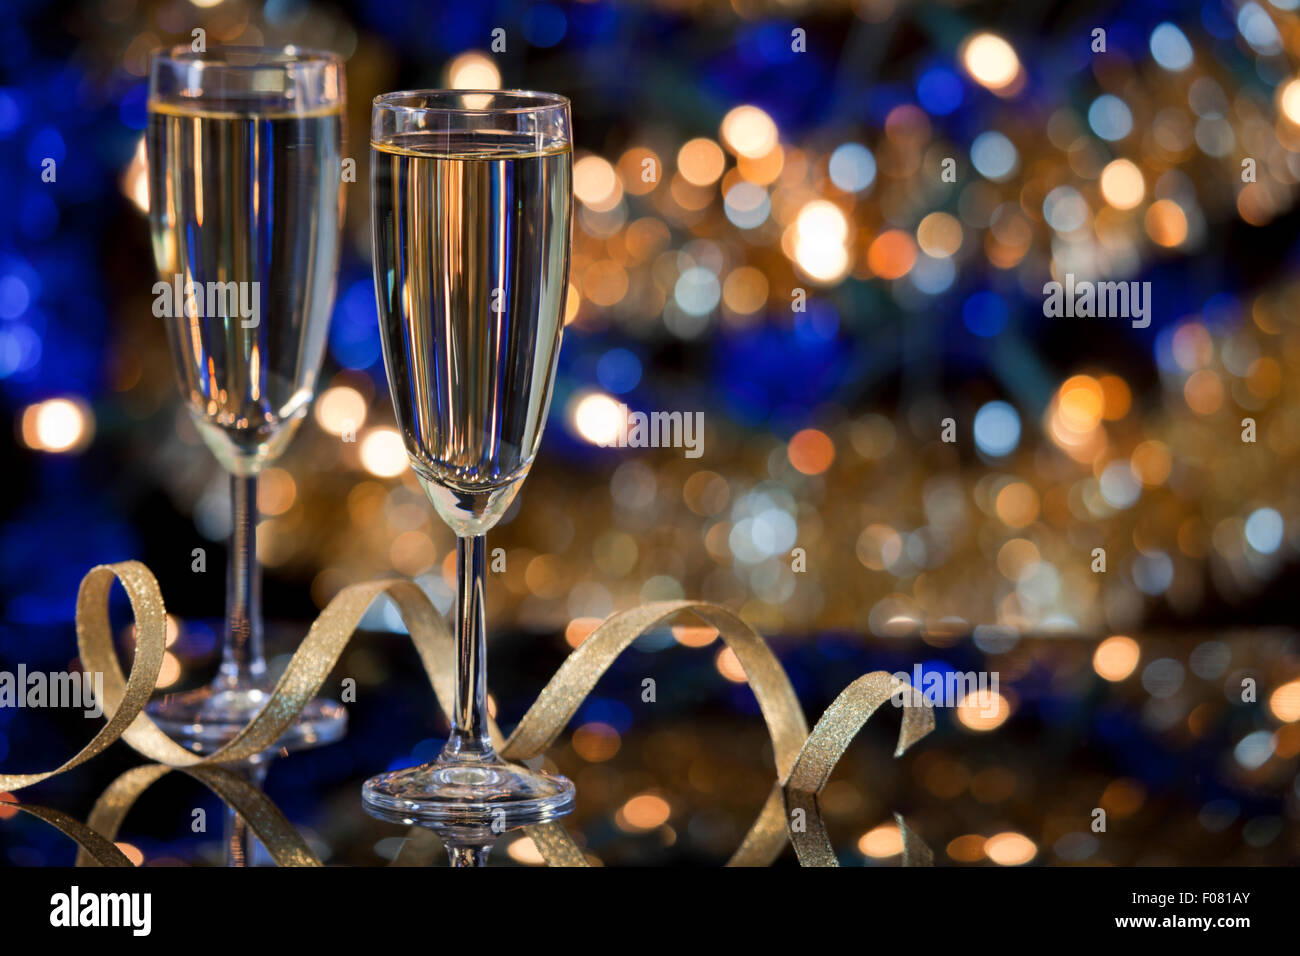 a new years eve scene with champagne glasses and christmas lights in the background